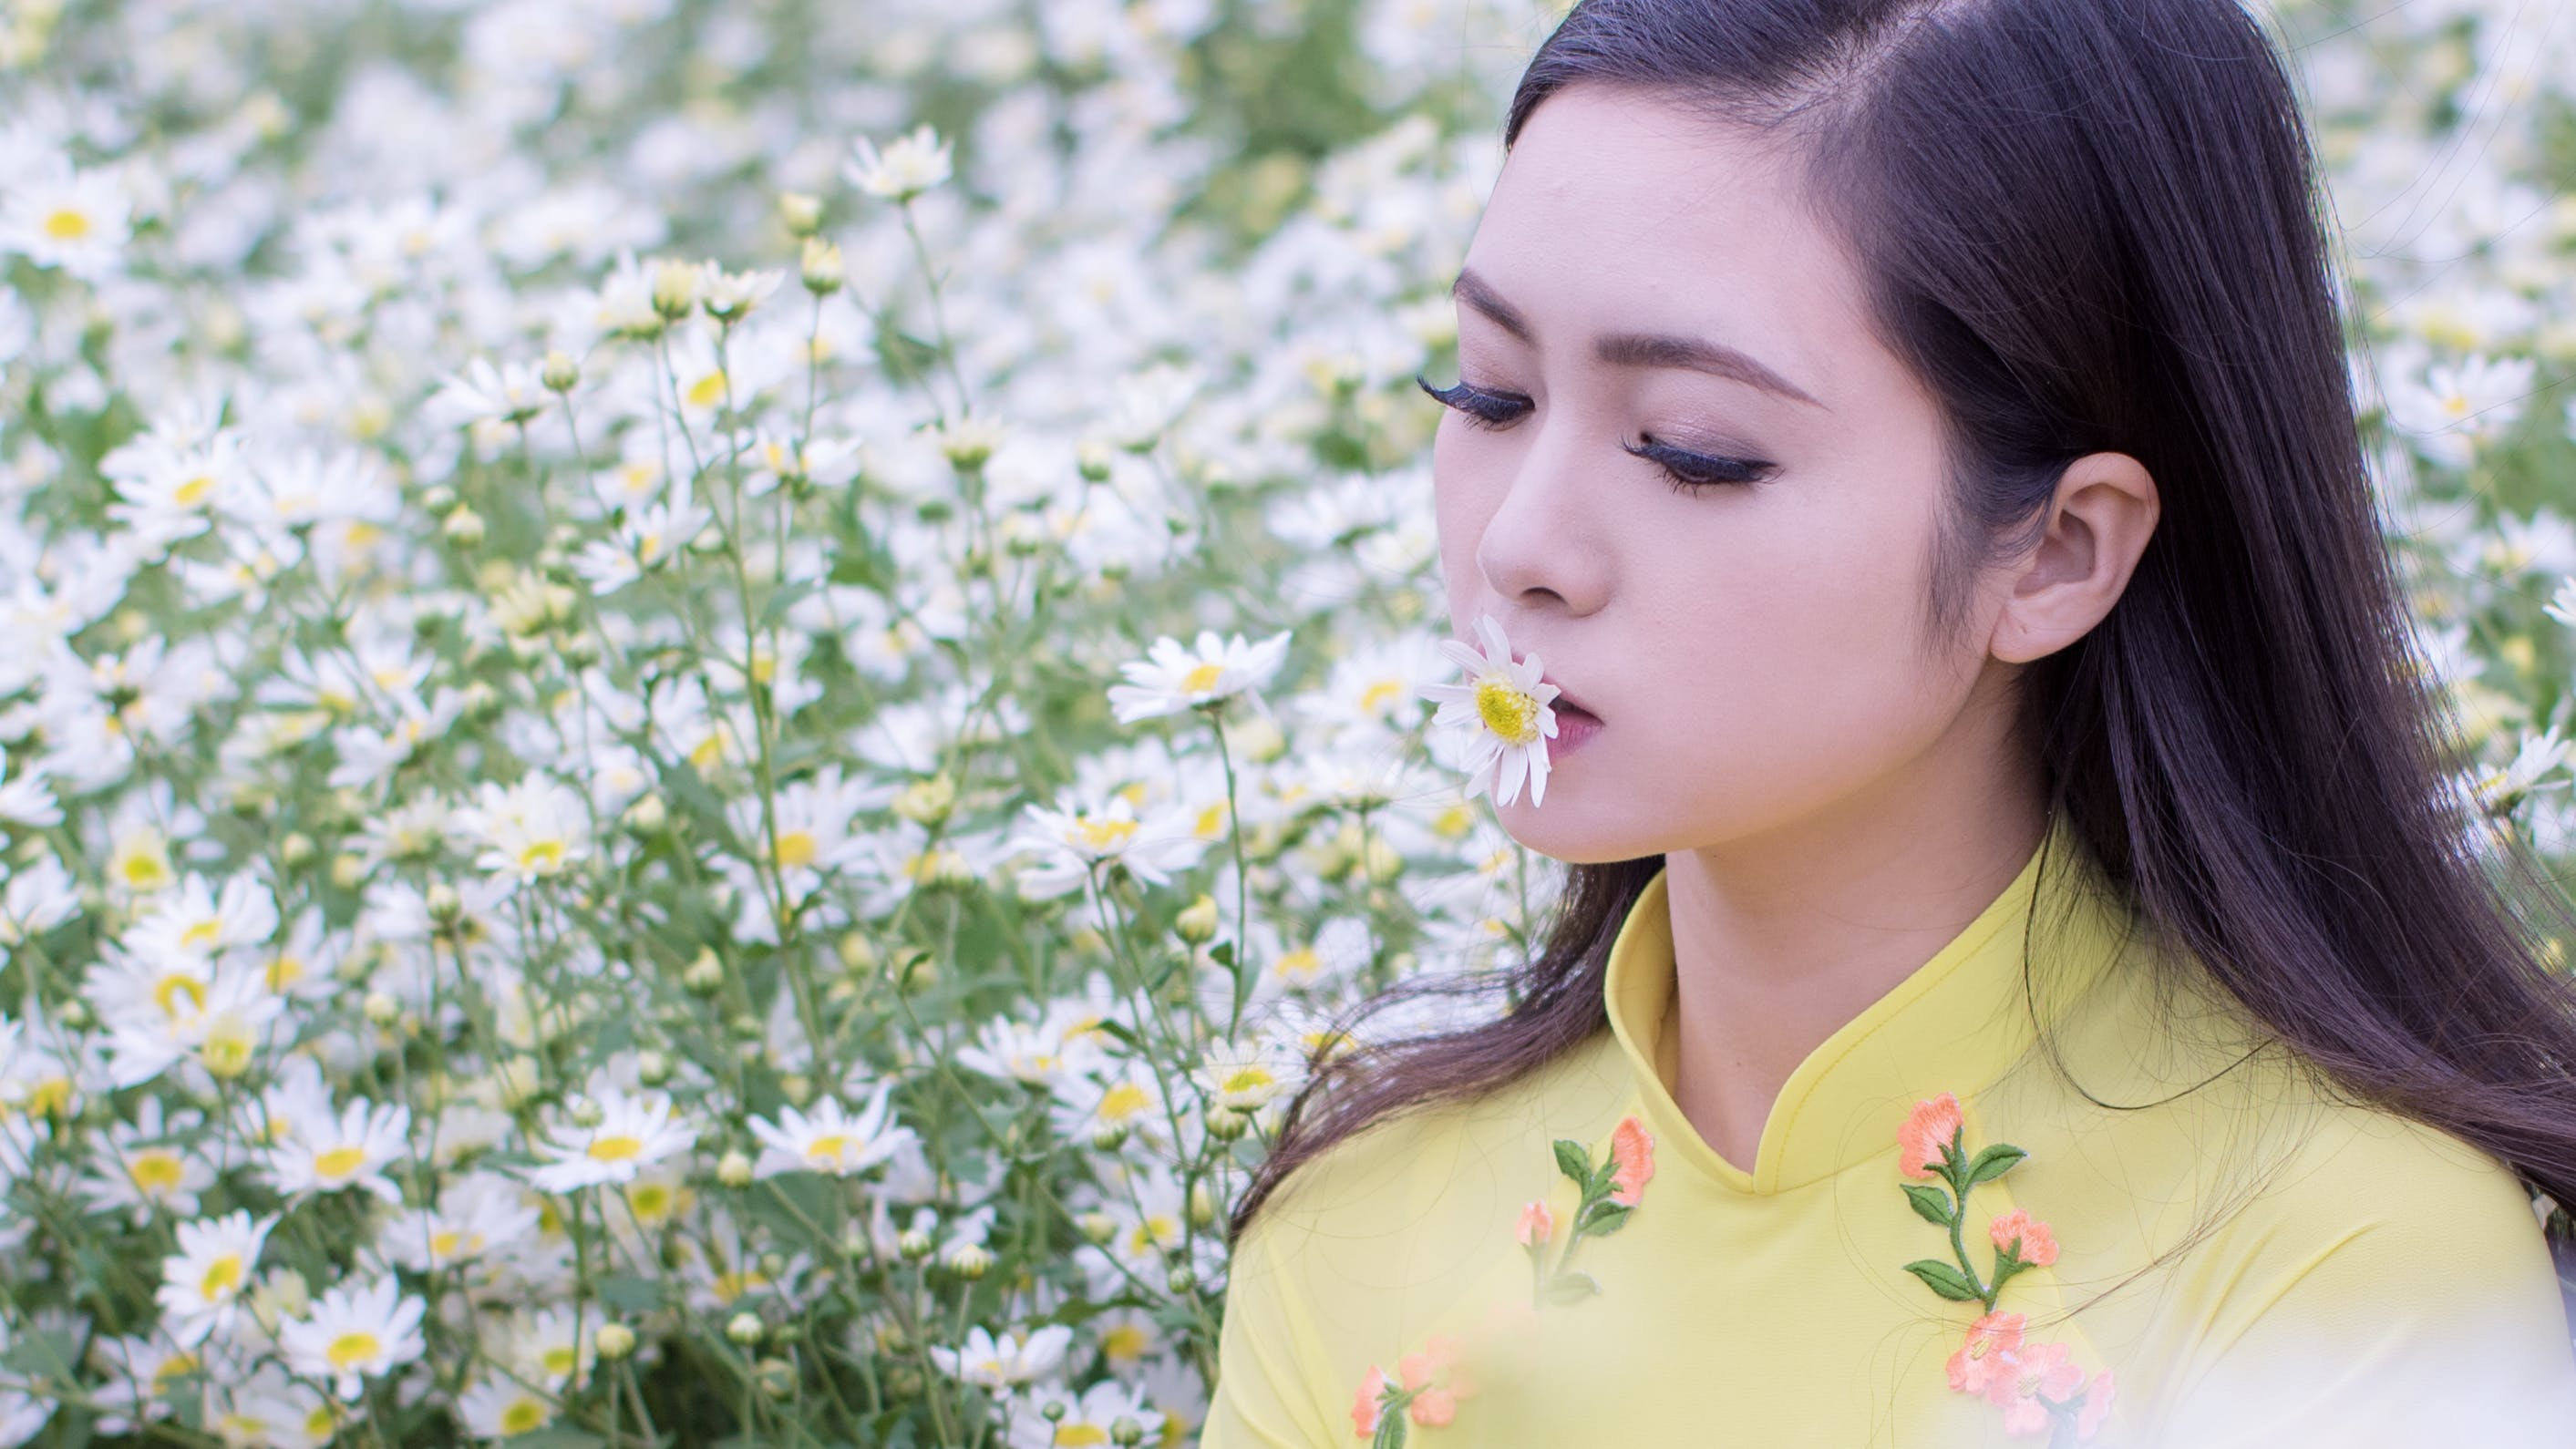 Selective Focus Photography of Woman Kissing White Petaled Flower